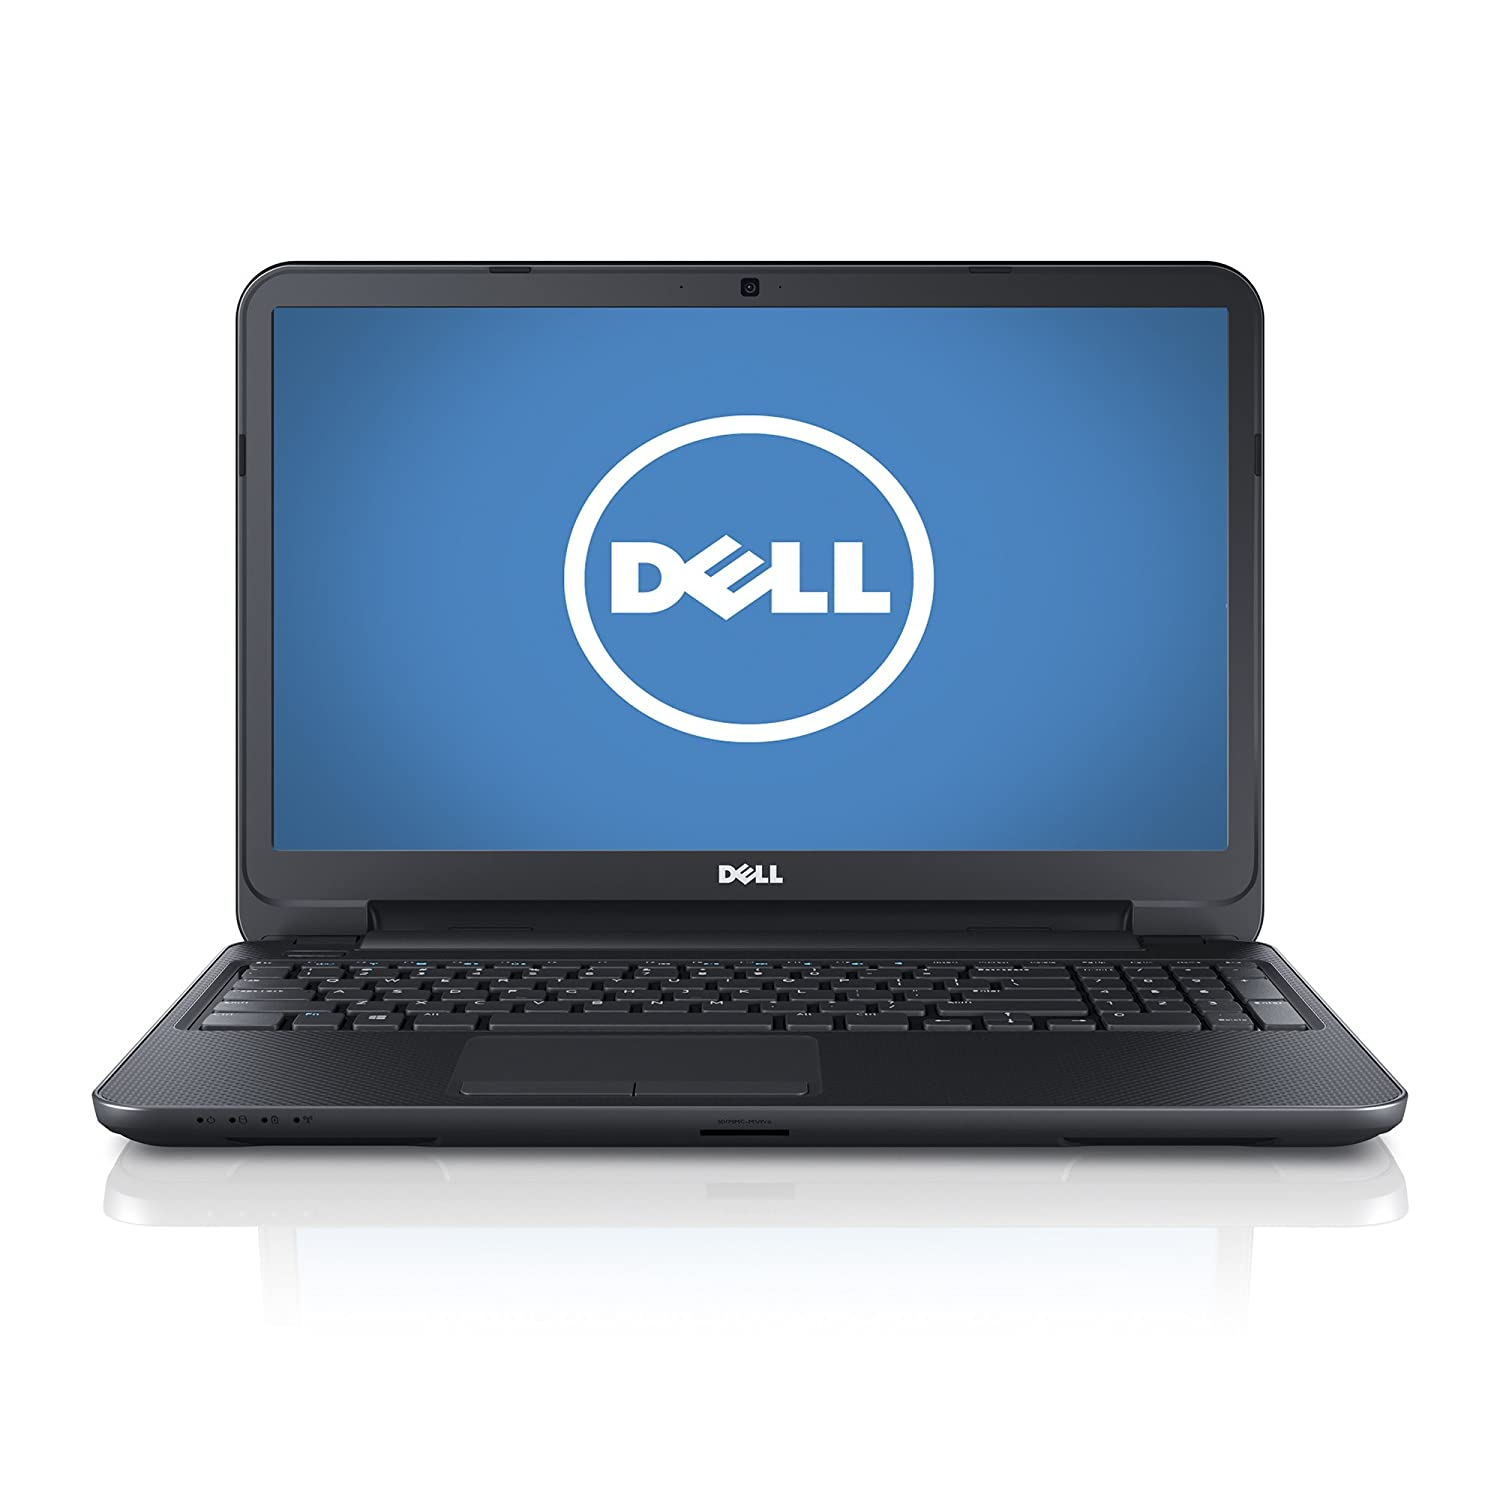 Dell Inspiron 15 i15RV-1952BLK 15.6-Inch Laptop